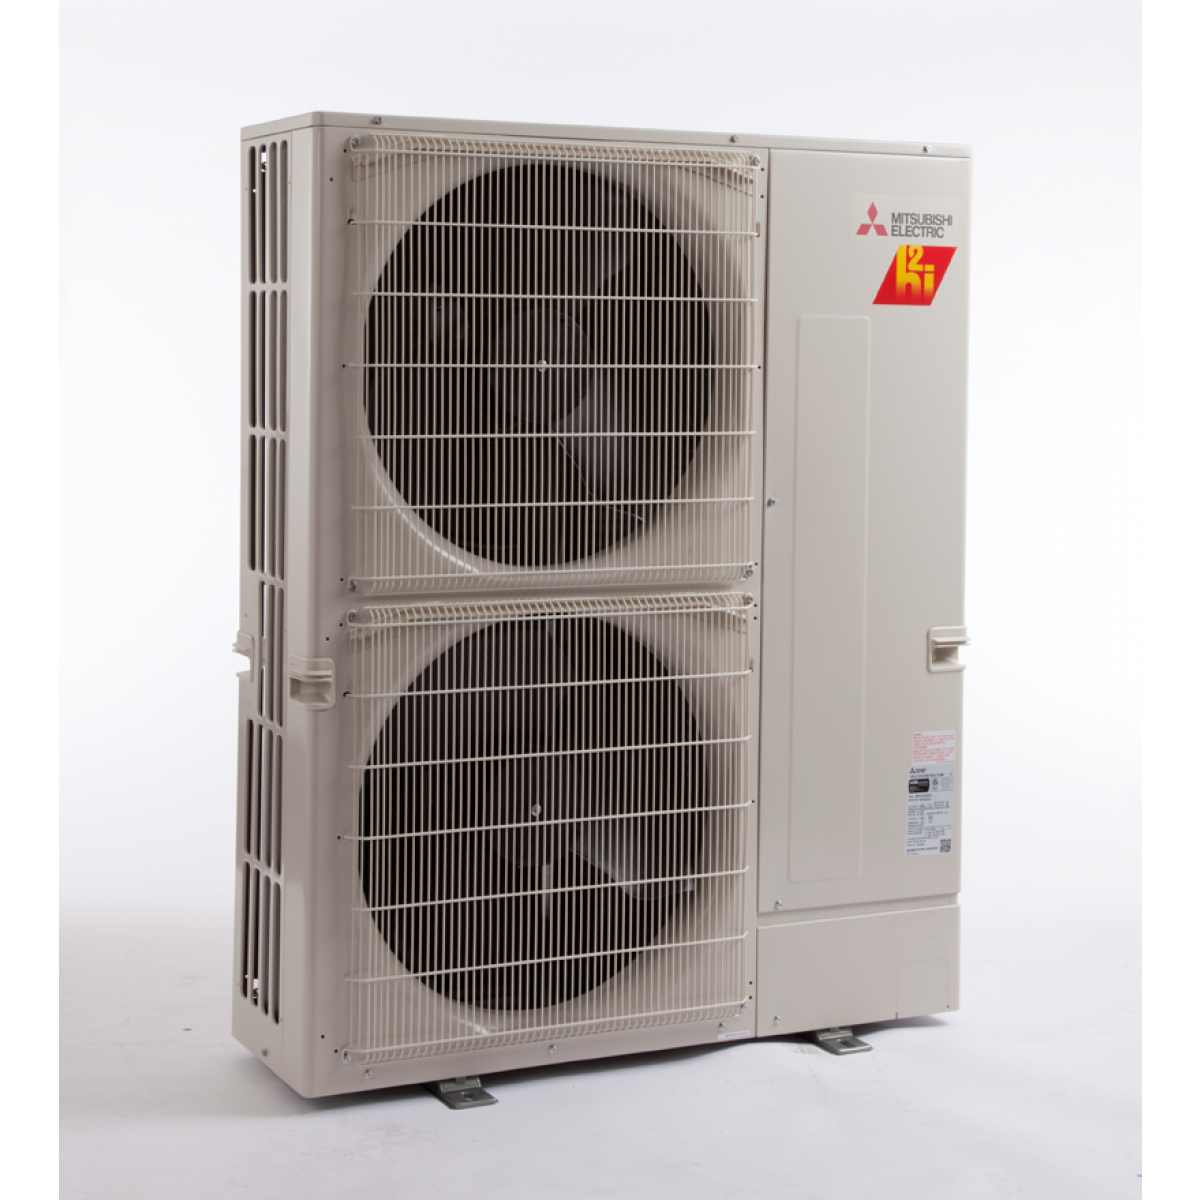 #B96E12 Mitsubishi Electric Room Heaters Mitsubishi Wiring  Highest Rated 13846 Room Air Conditioner Mitsubishi img with 1200x1200 px on helpvideos.info - Air Conditioners, Air Coolers and more